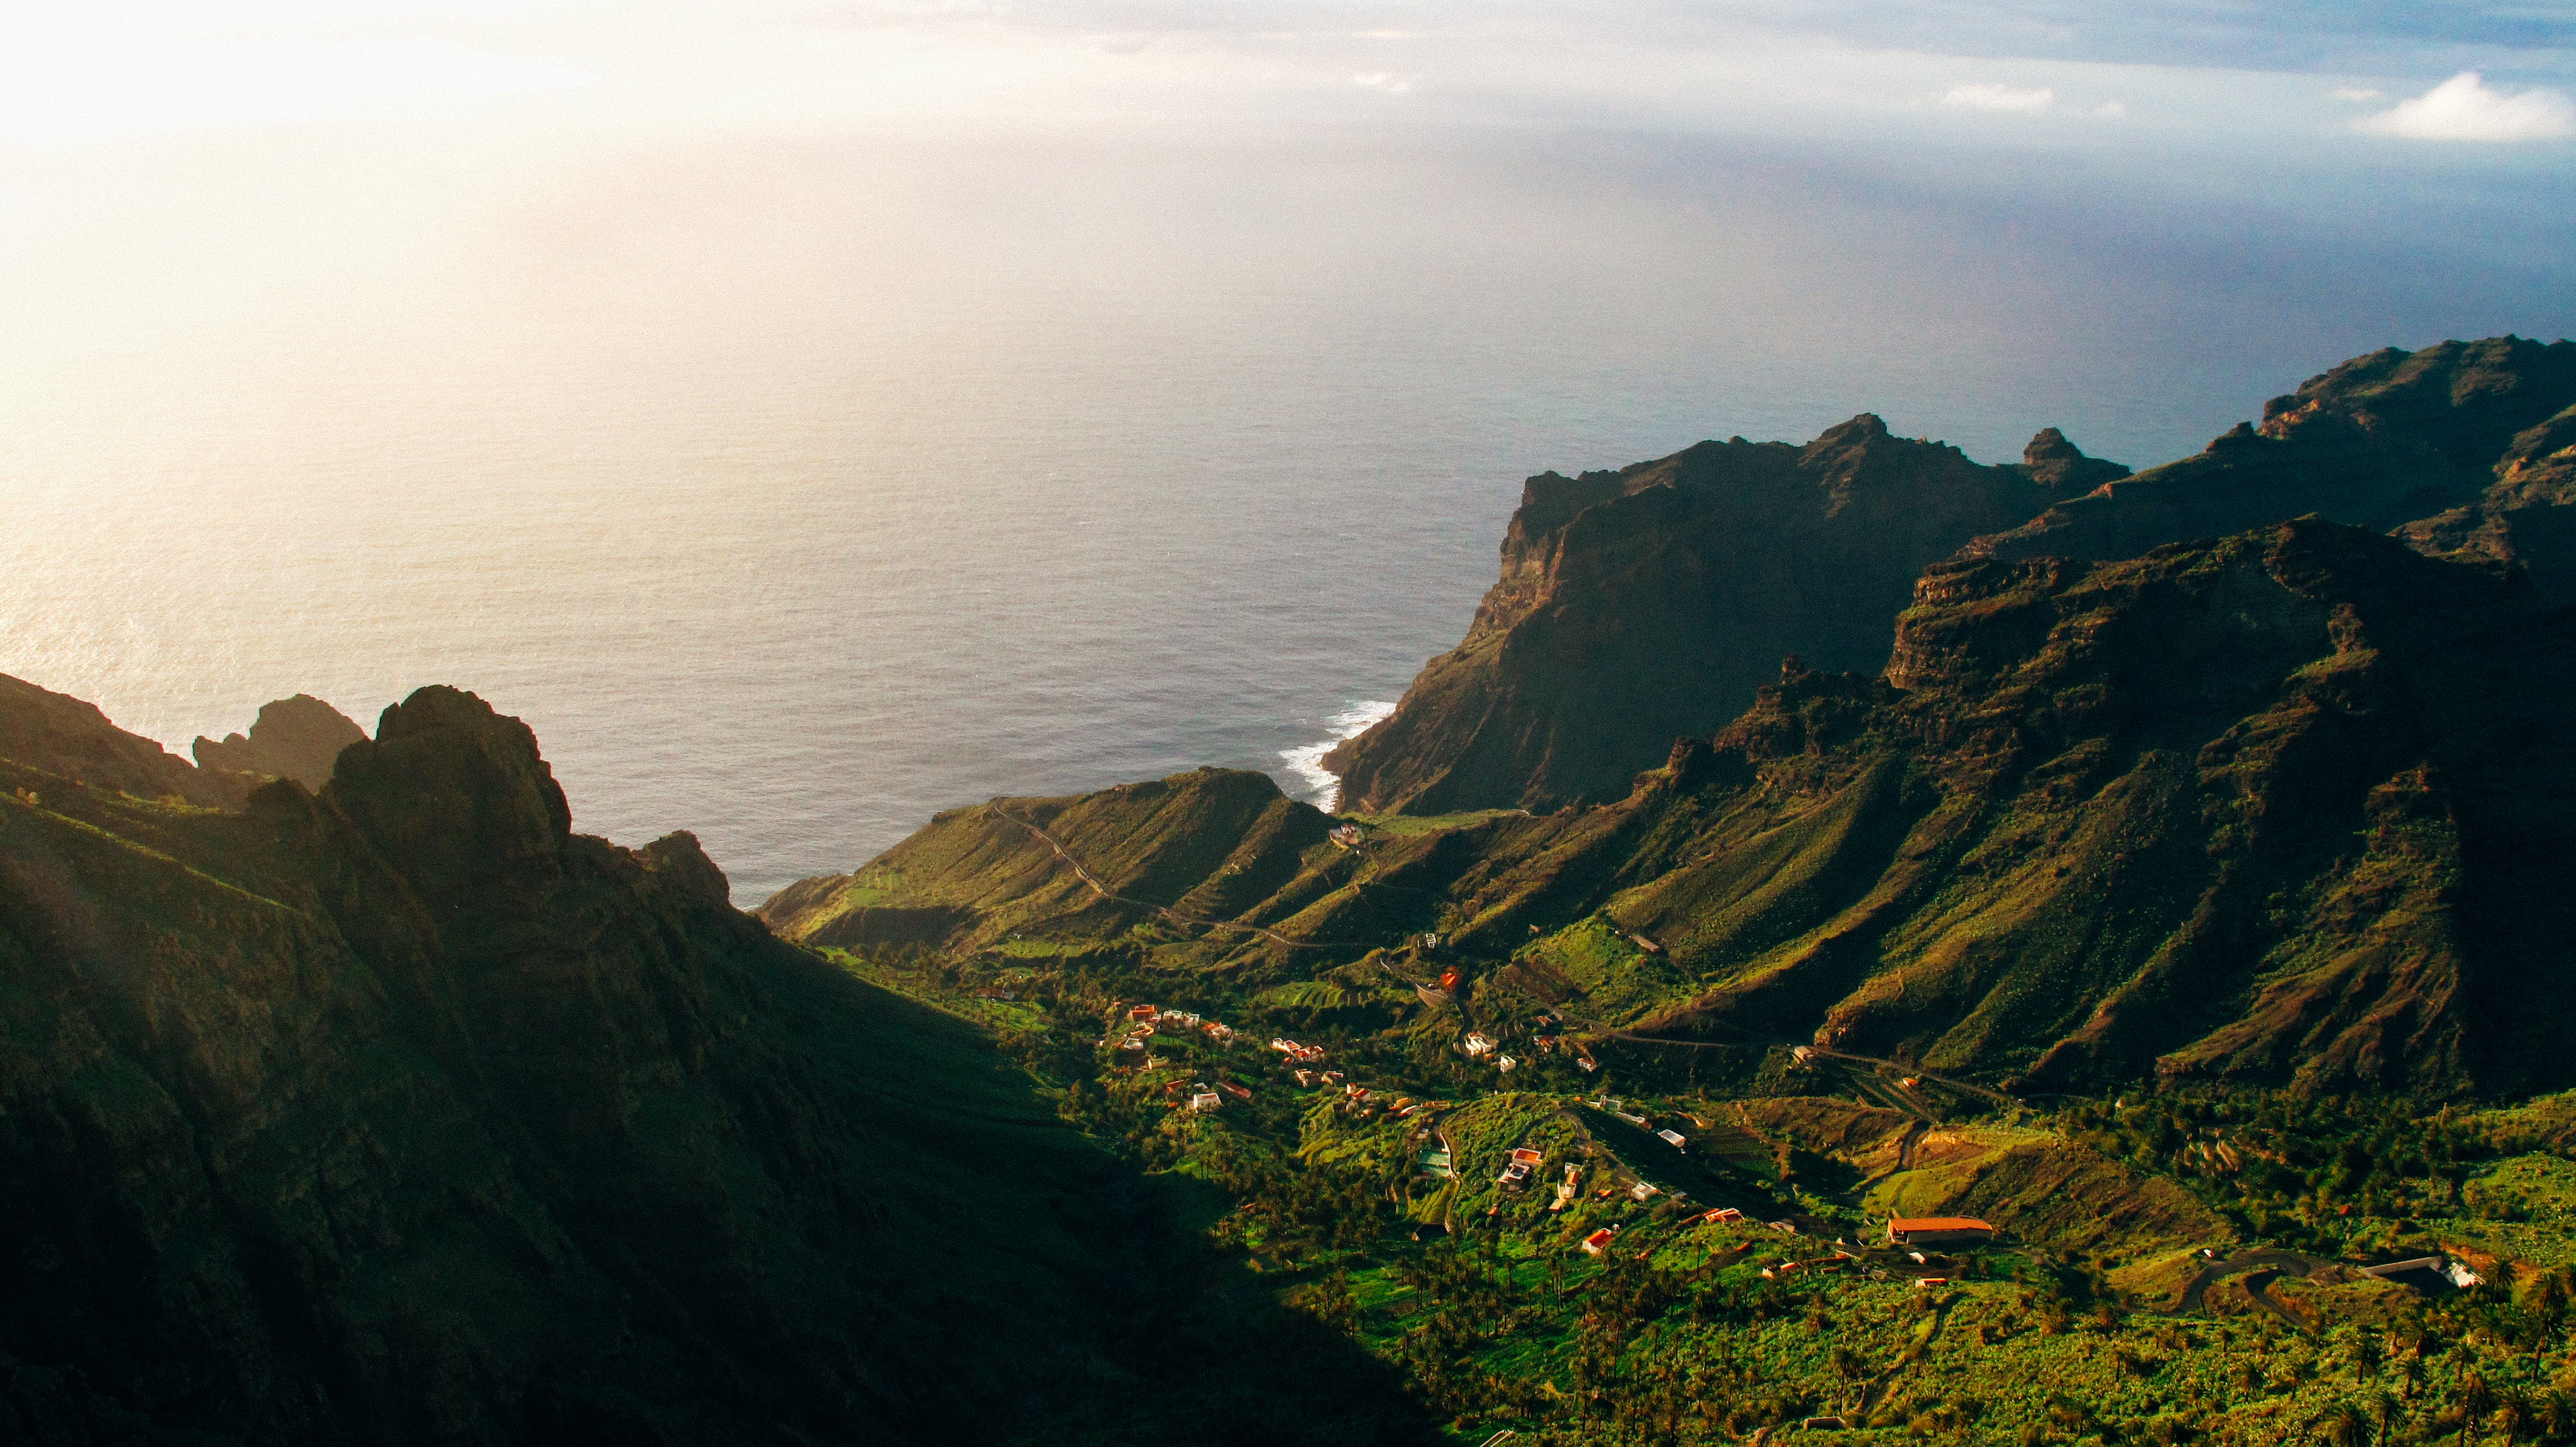 Aerial Photography of Mountain and Ocean View